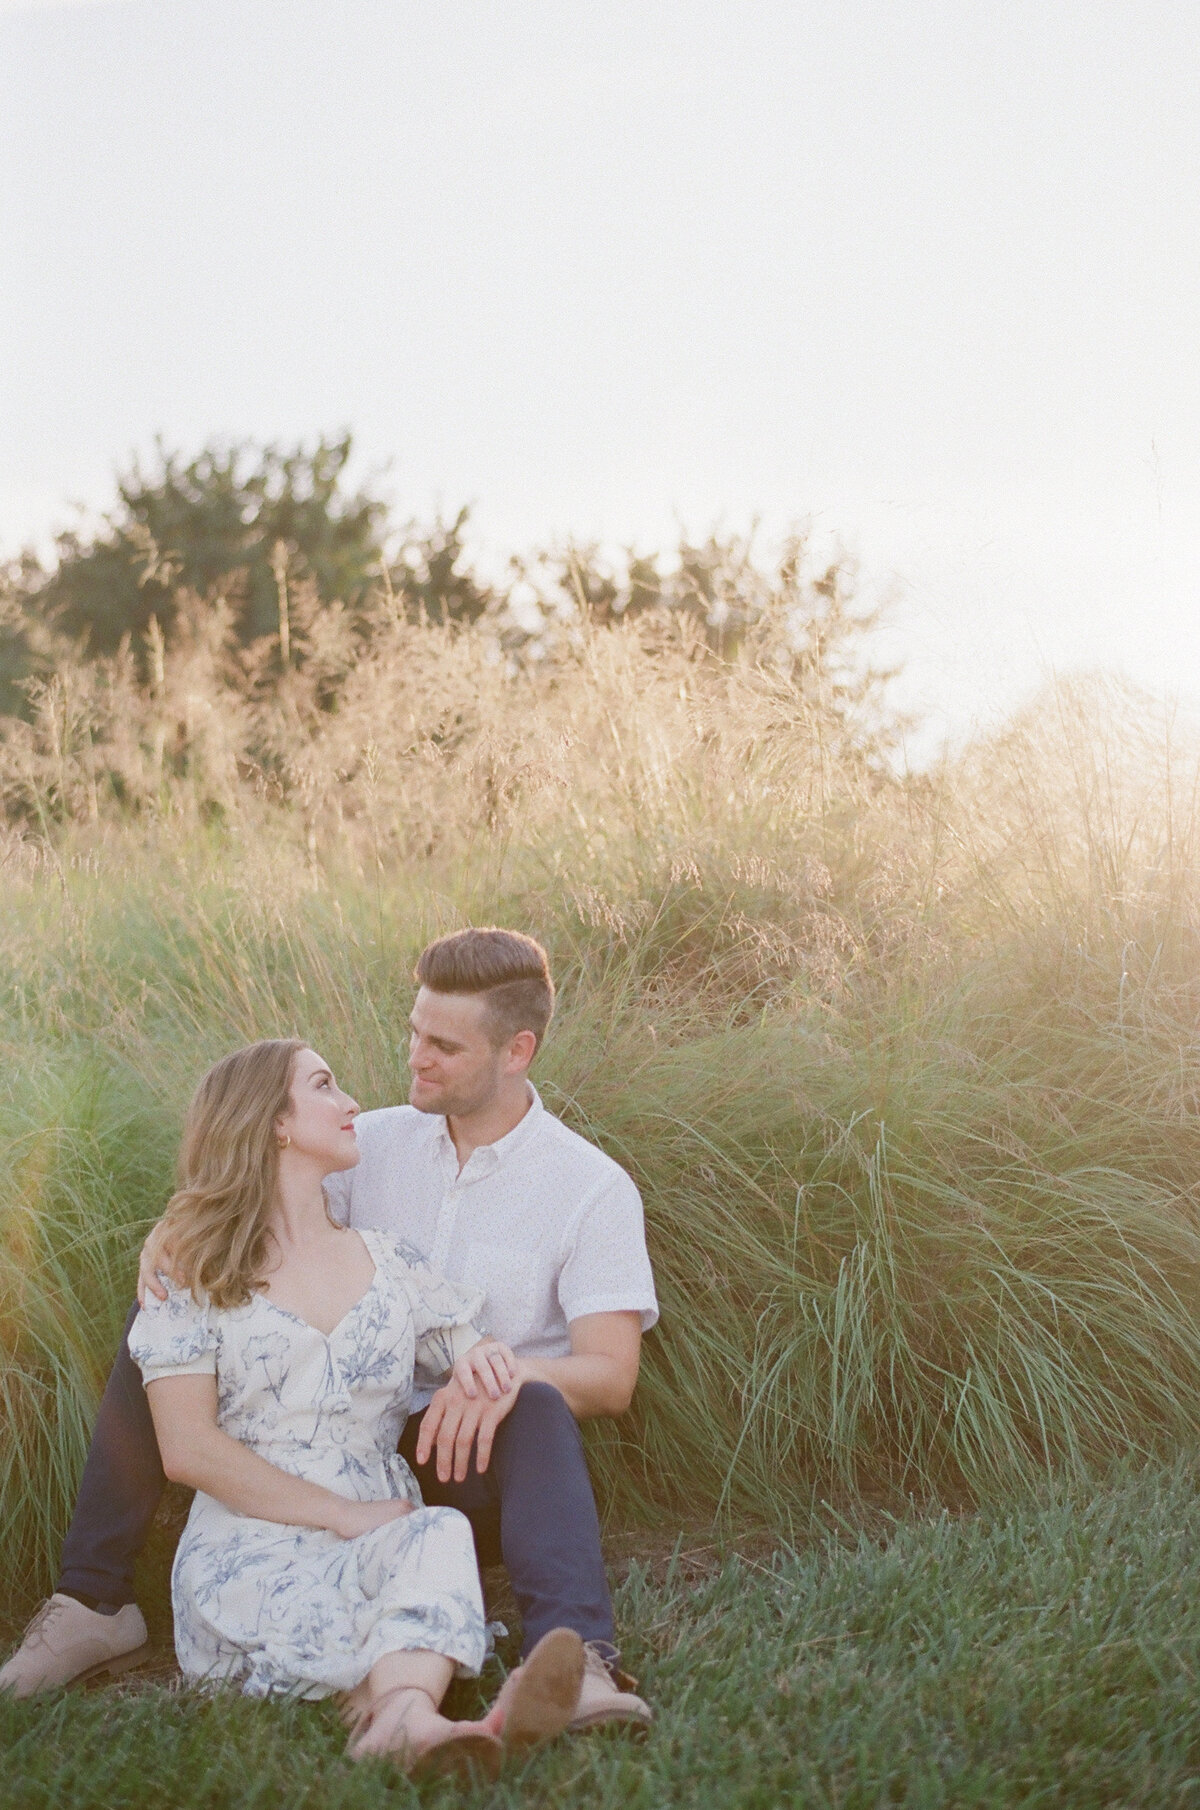 Engagement Photography at the NC Museum of Art in Raleigh, NC 15